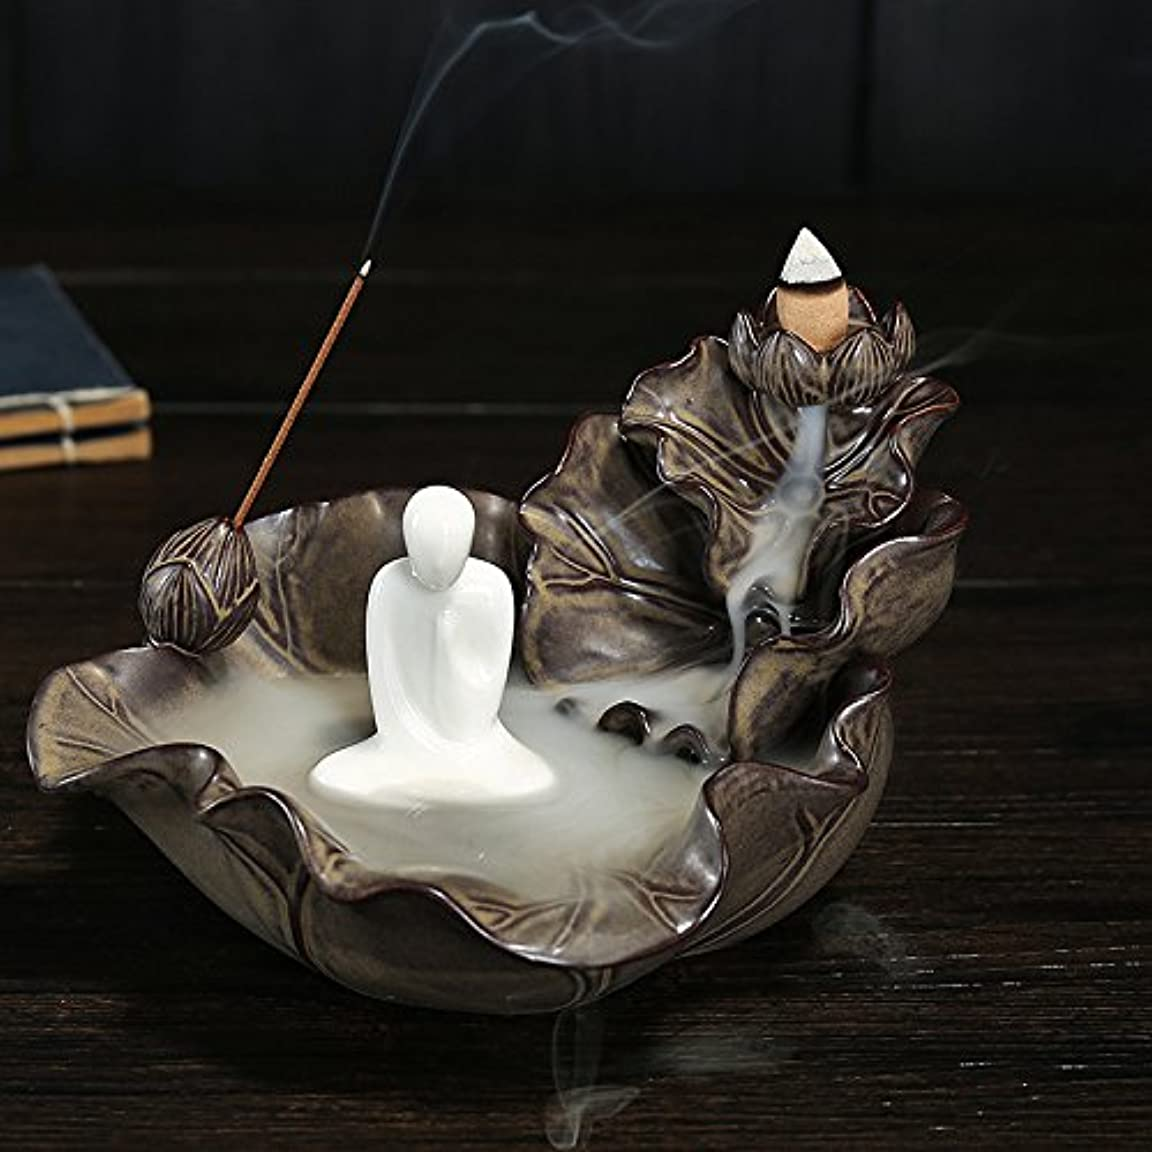 広範囲不足イチゴ逆流香炉、香ホルダー、Monk Incense Burner Ceramics Incense Holder with 10pcs Backflow Incense Cones One Size ブラウン 125025